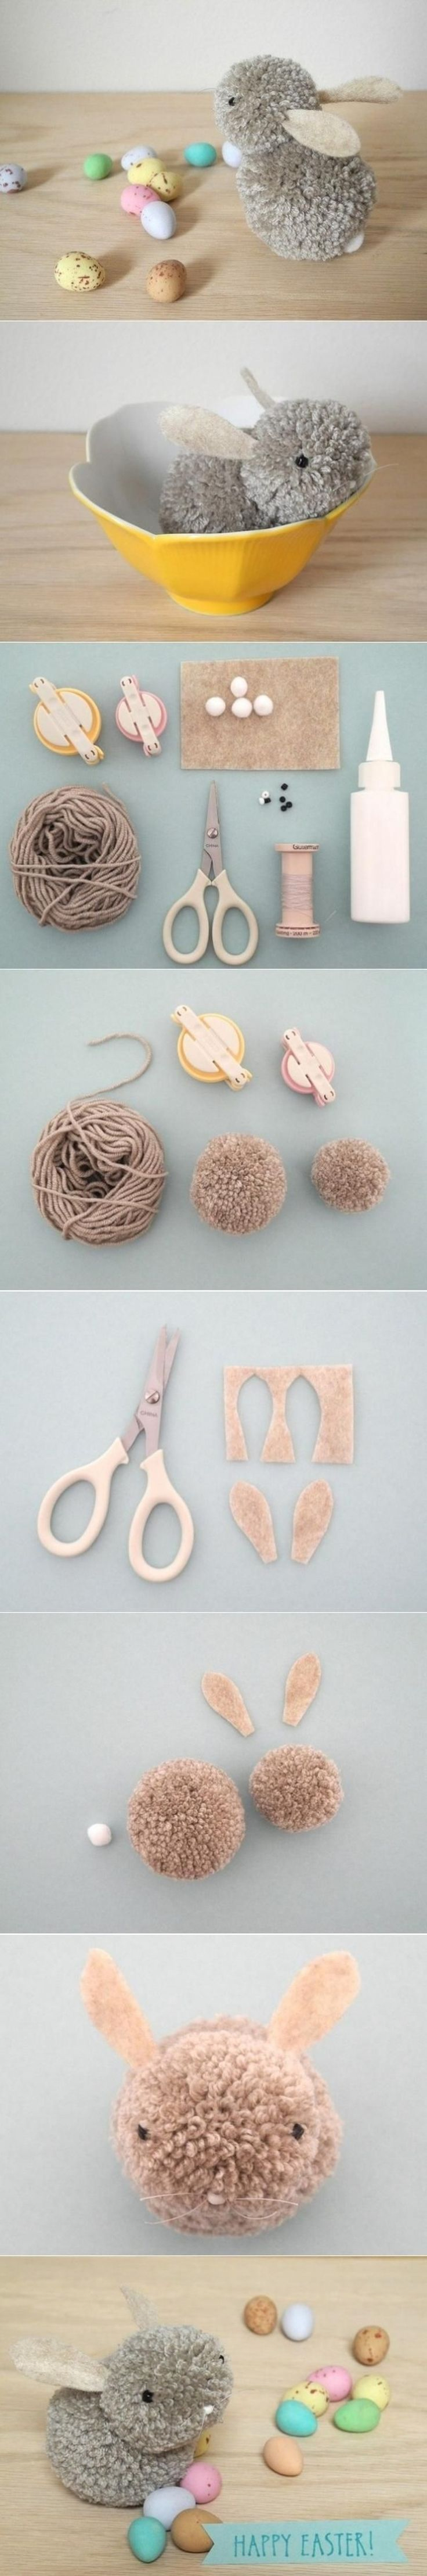 17. DIY Pom Pom #Bunny - 31 Playful Pom Pom Crafts for Kids and #Adults ... → DIY #Playful